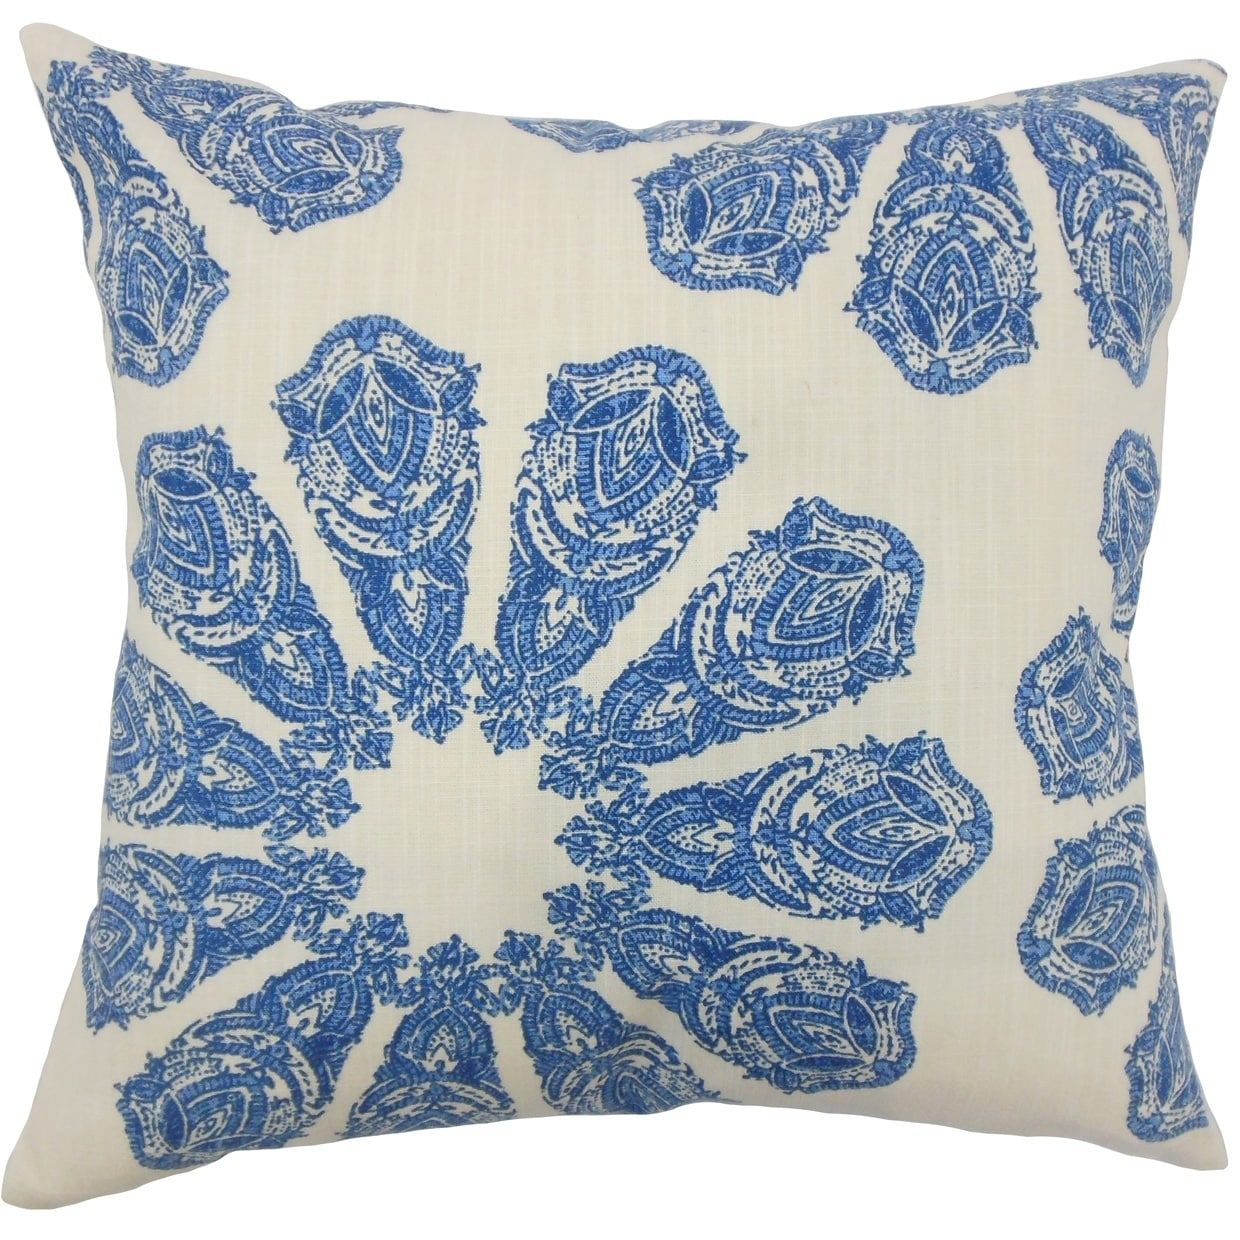 Ceilidh Ikat Down Filled Throw Pillow in Lapis (Rectangle - 12 x 18), Blue